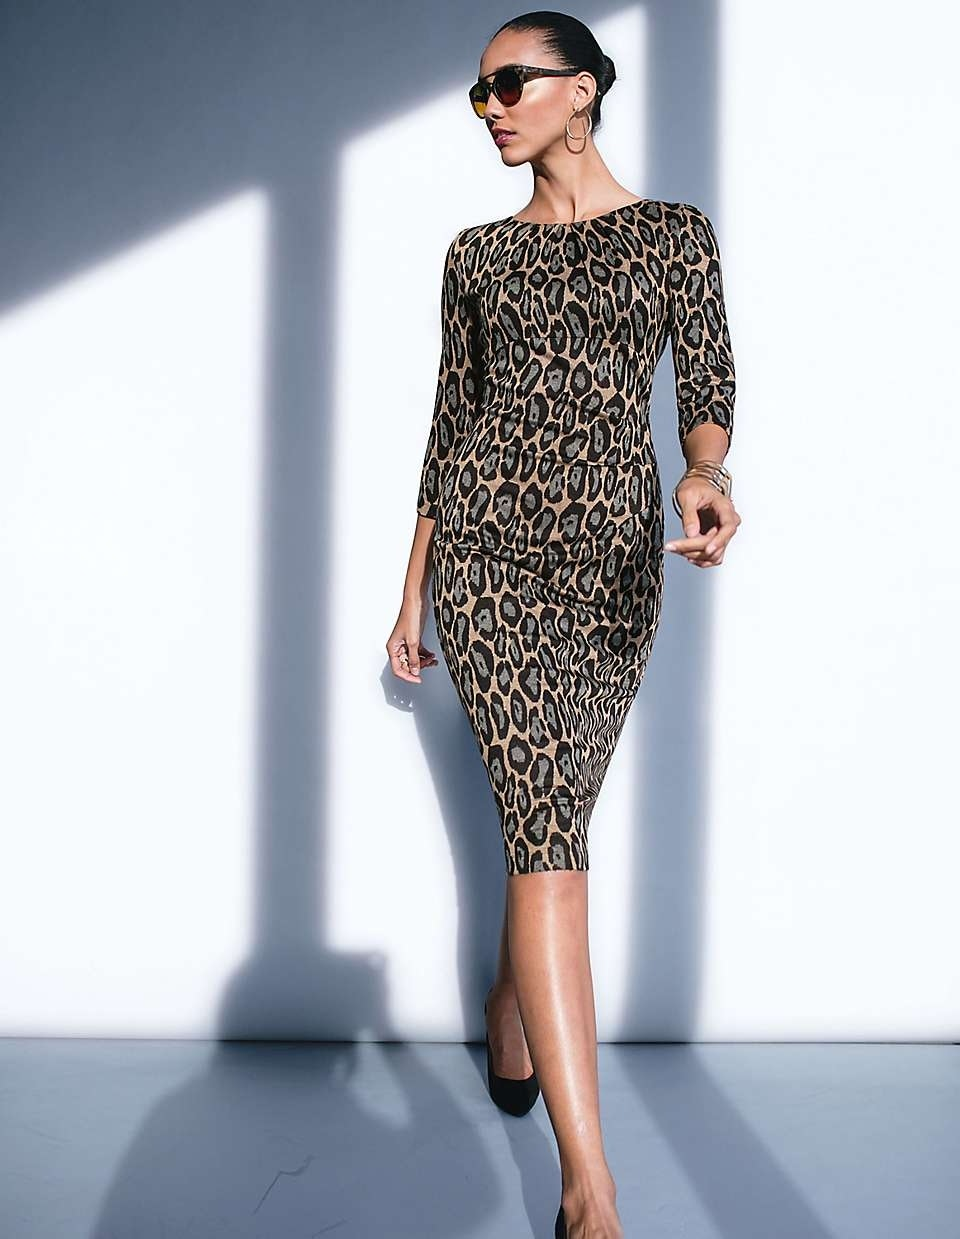 Model im Leoprint-Kleid